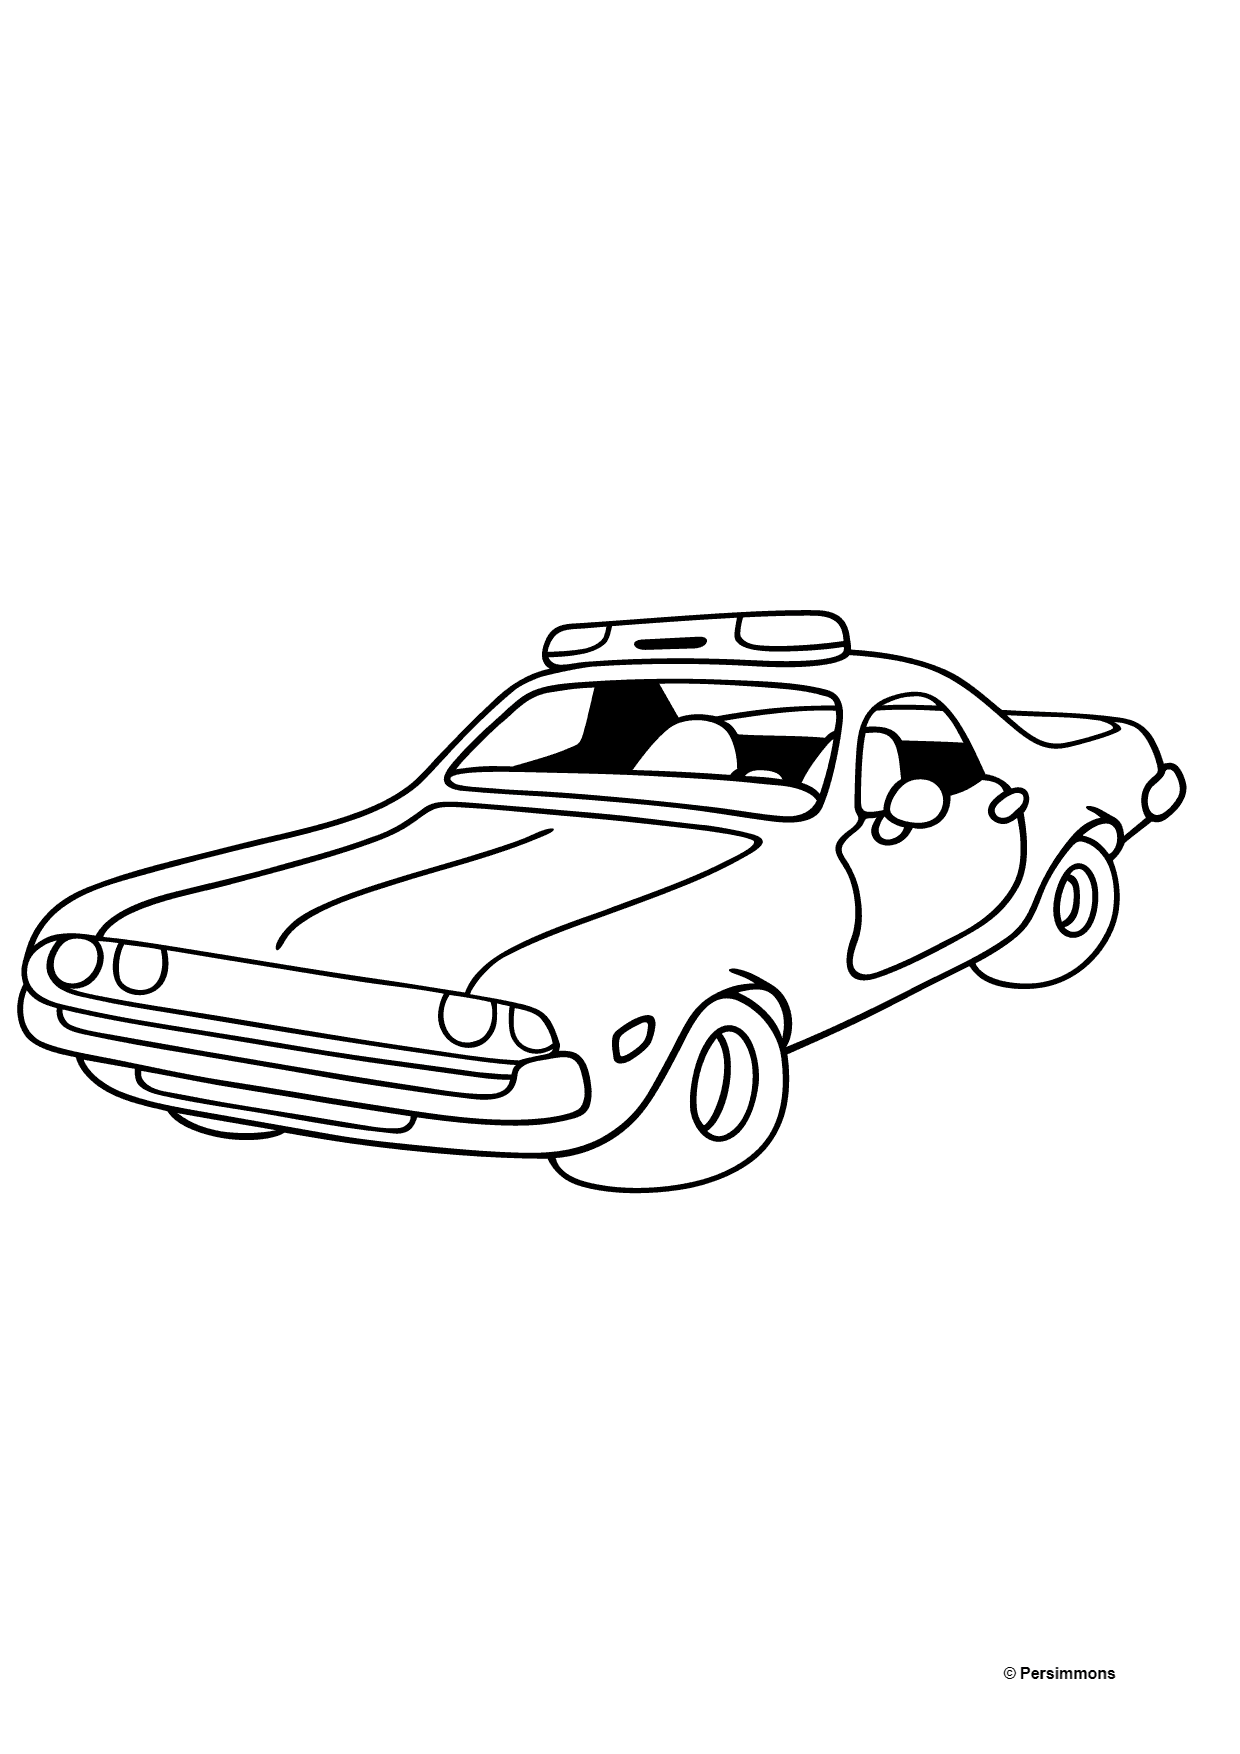 Coloring Page - A Red Police Car for Children